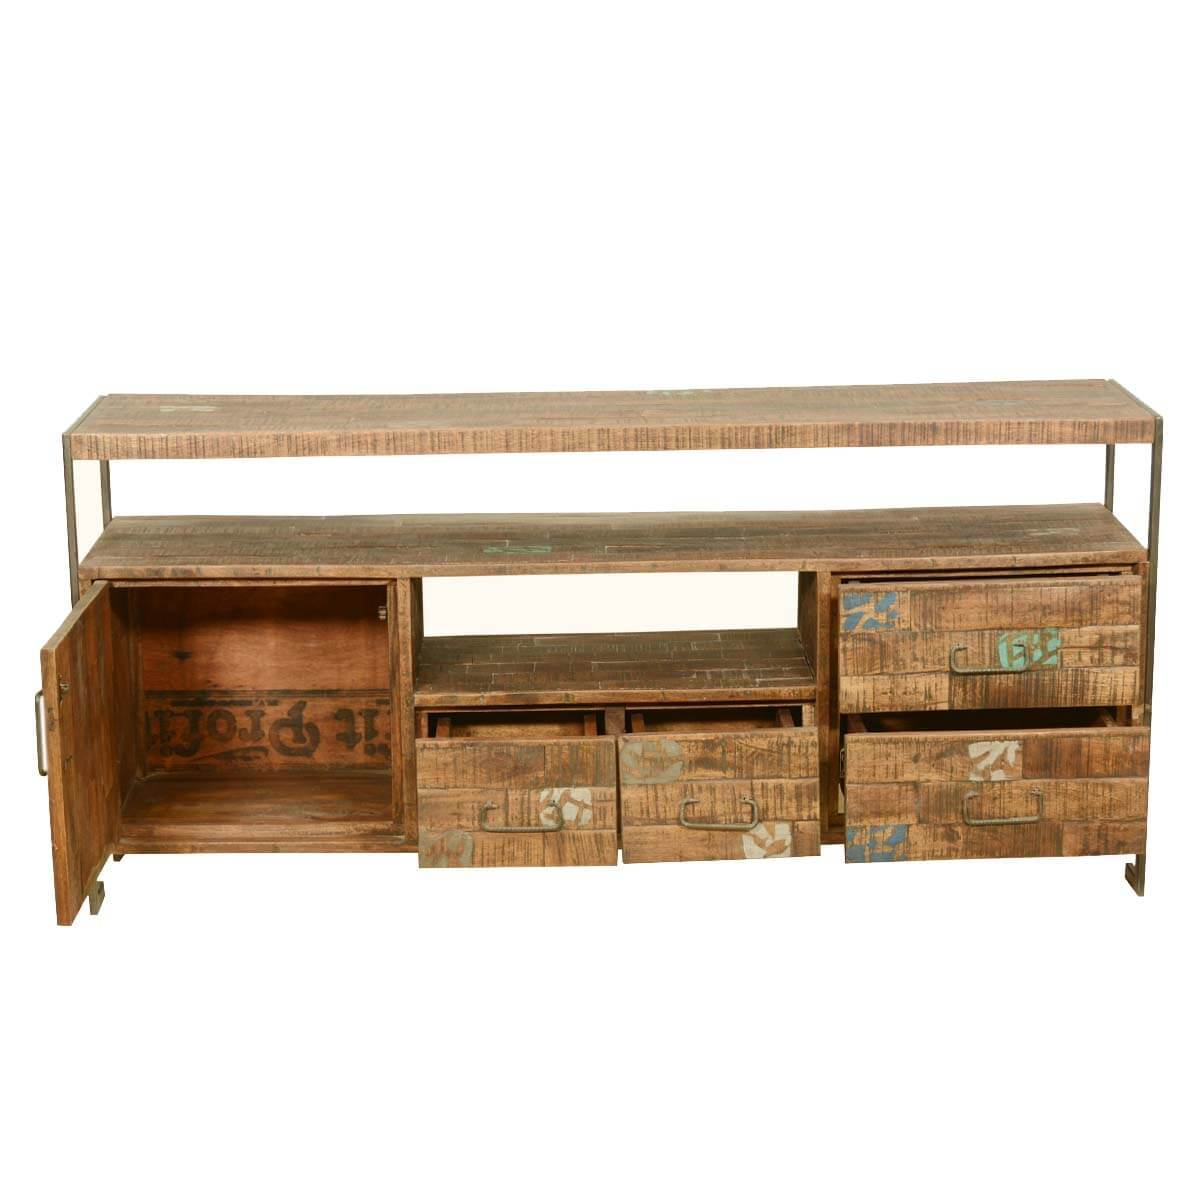 Retro industrial reclaimed wood iron rustic media Rustic tv stands